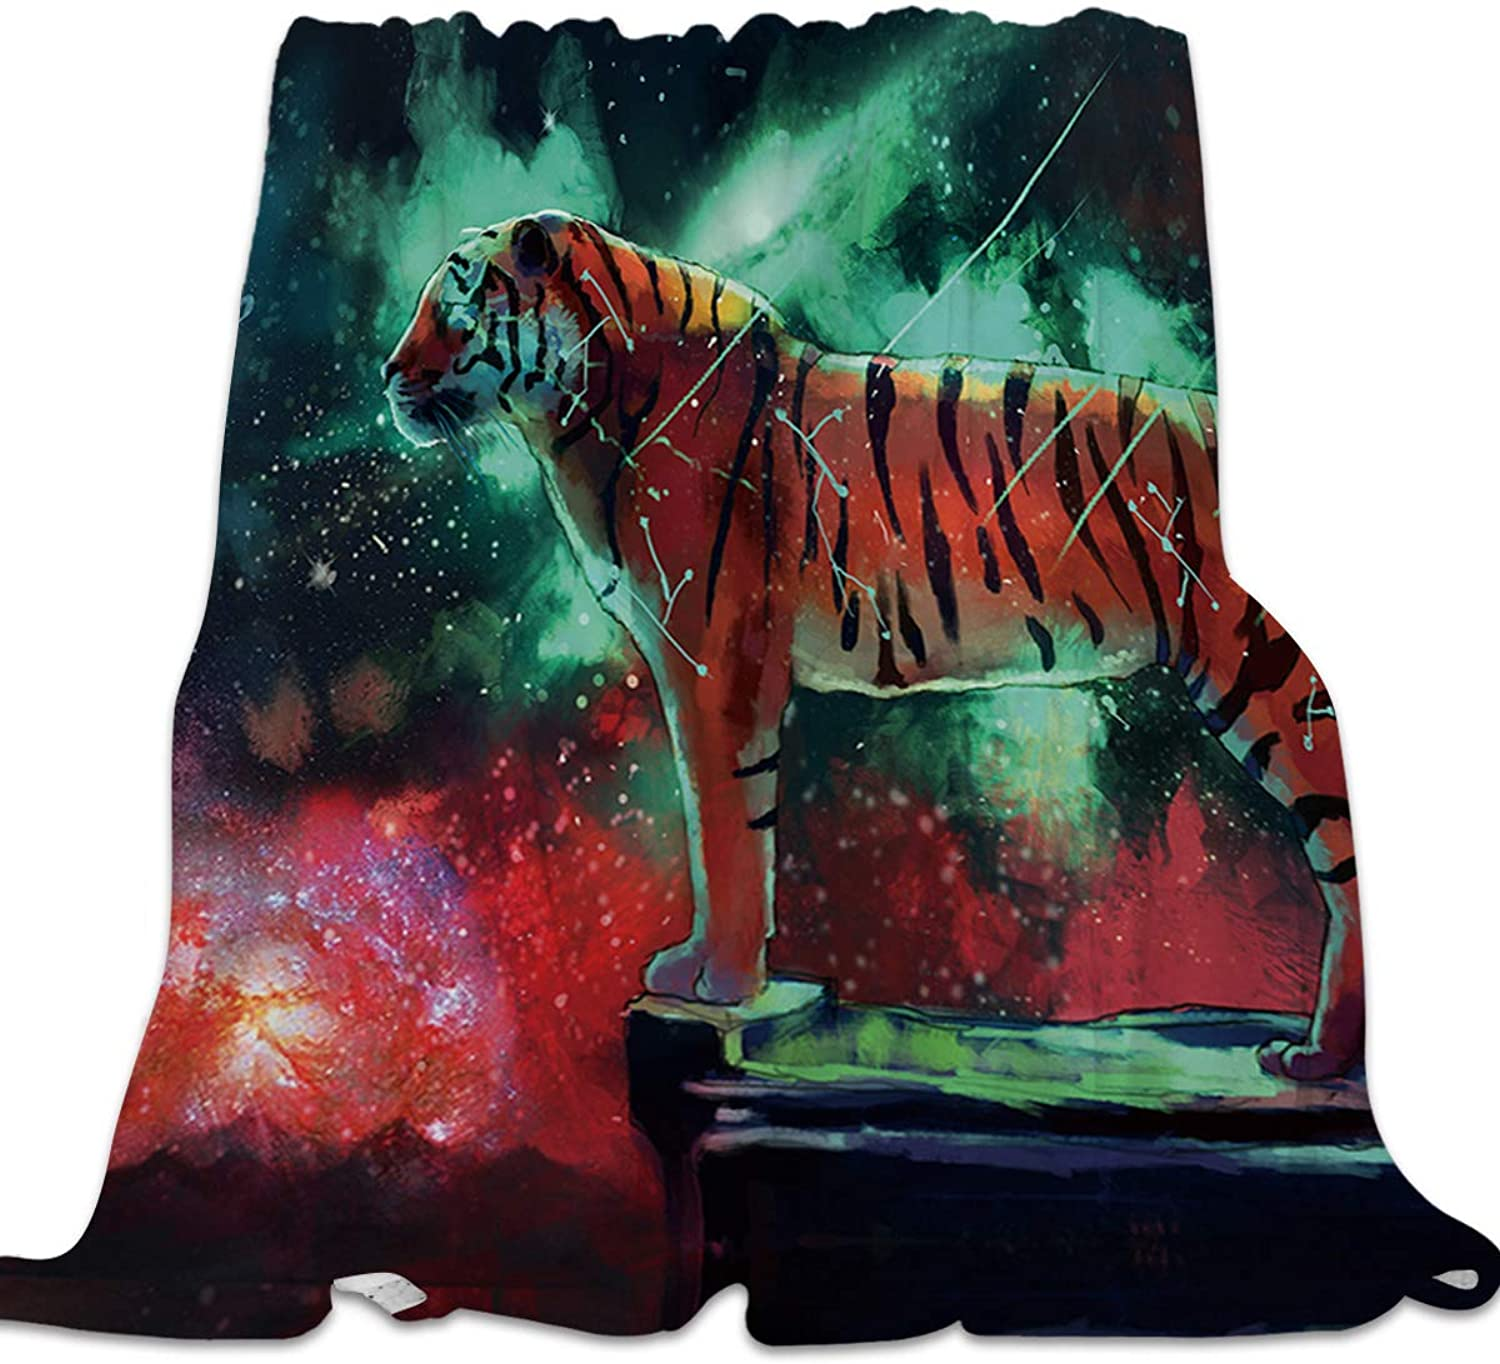 YEHO Art Gallery Flannel Fleece Bed Blanket Super Soft Cozy ThrowBlankets for Kids Girls Boys,Lightweight Blankets for Bed Sofa Couch Chair Day Nap,colorful Tiger Animal Universe Pattern,49x59inch